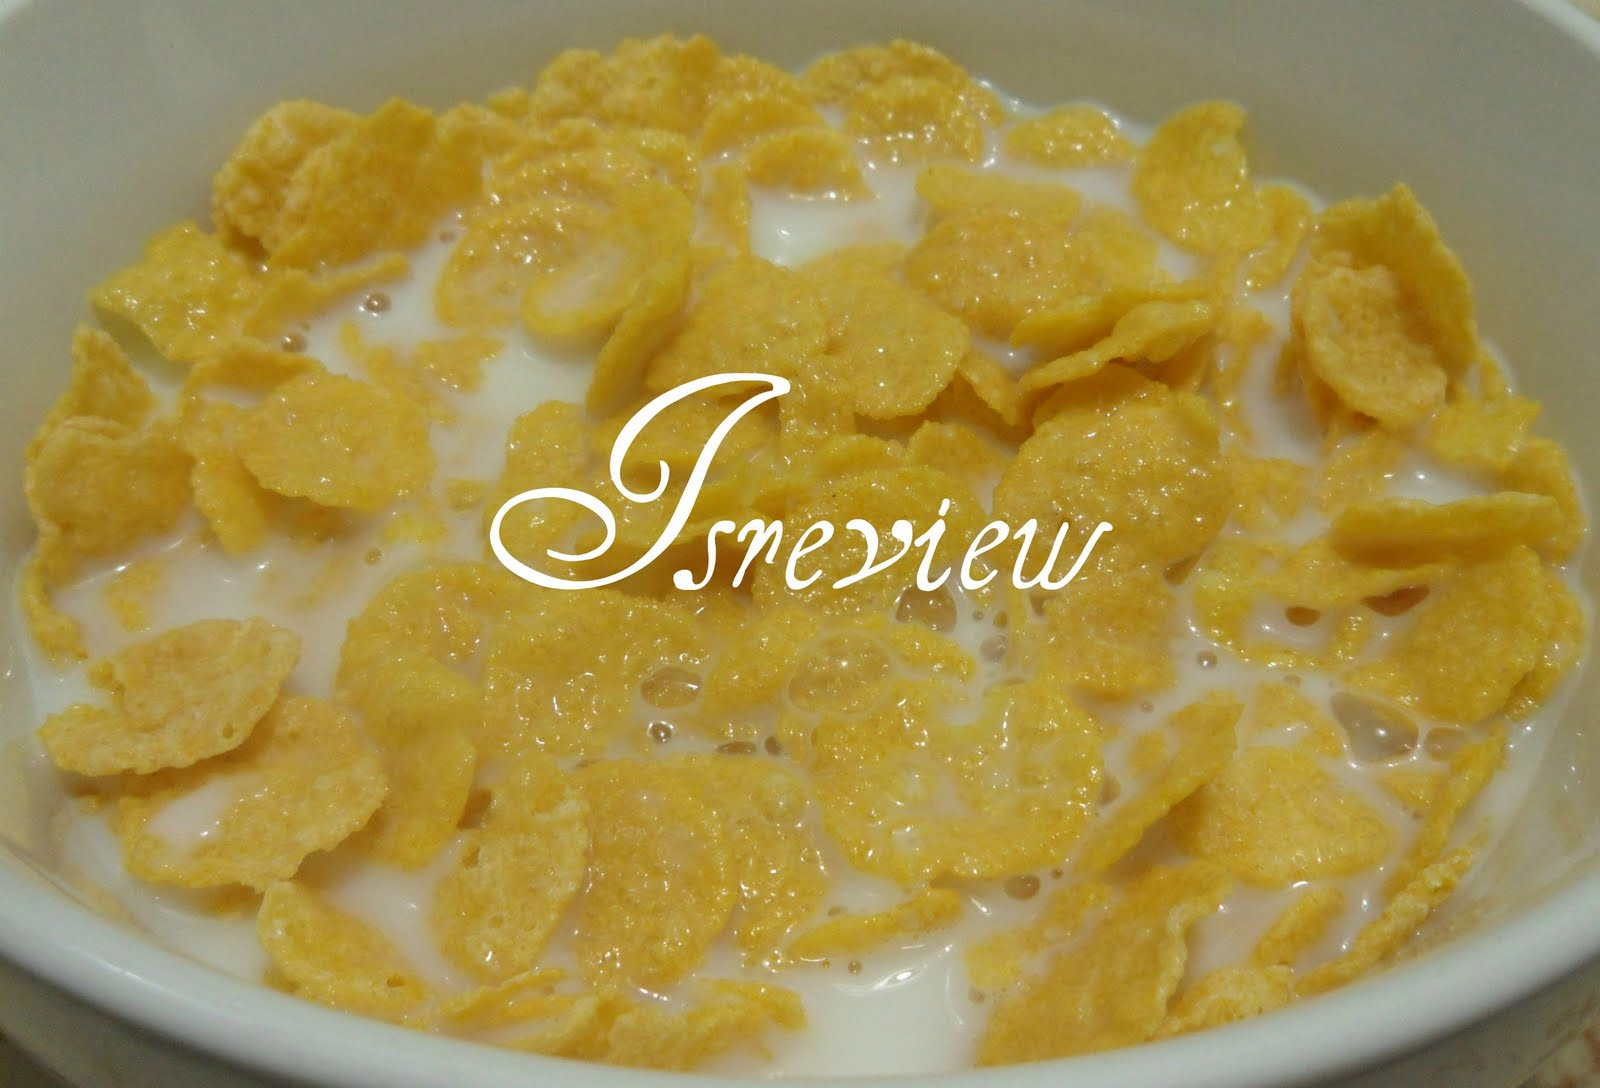 Isreview telmas vanilla flavored cornflakes i just thought the frosting may help them not go soggy so fast but no the coating didnt seem to prevent them from losing their crunchiness fairly ccuart Image collections